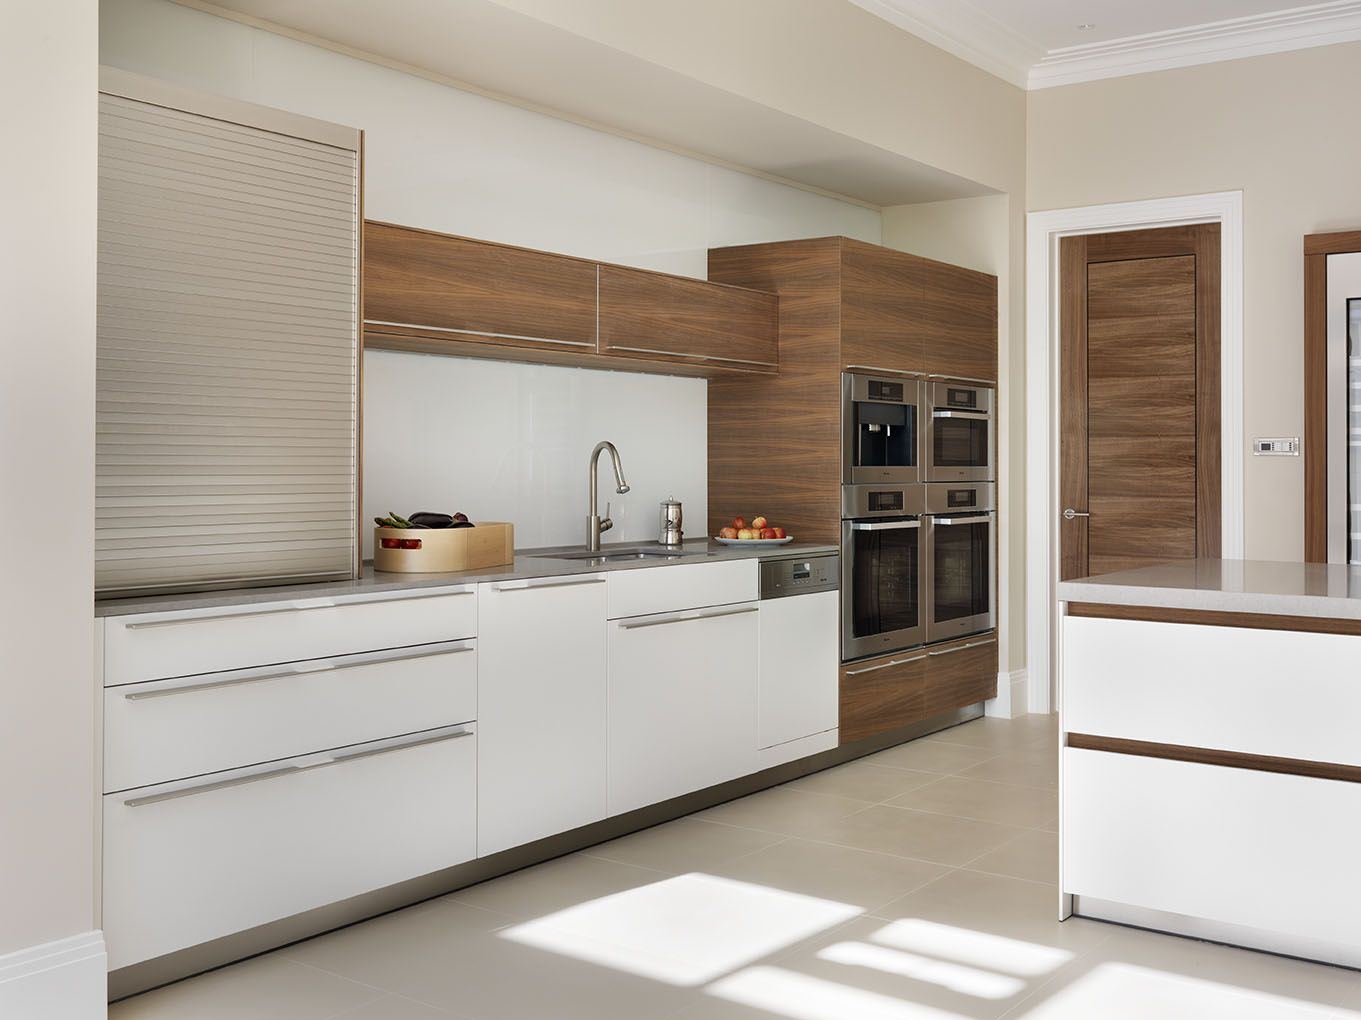 Kitchen Roller Doors hidden storage for those 'everyday' items is provided using the